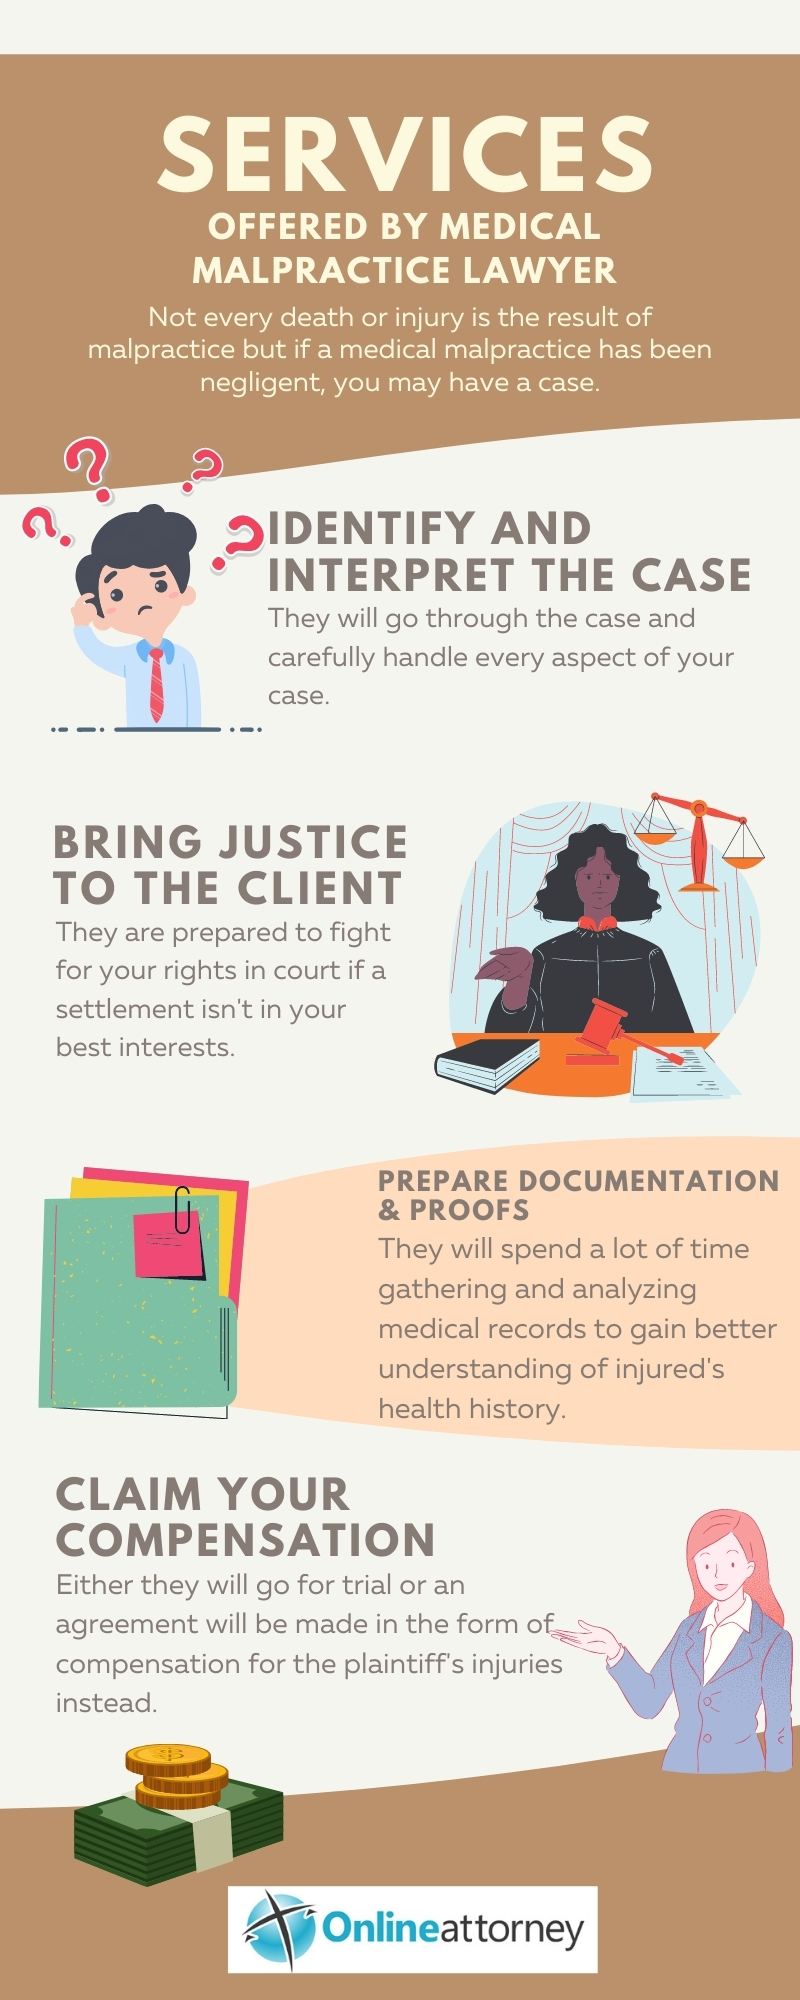 Services offered by medical malpractice lawyer